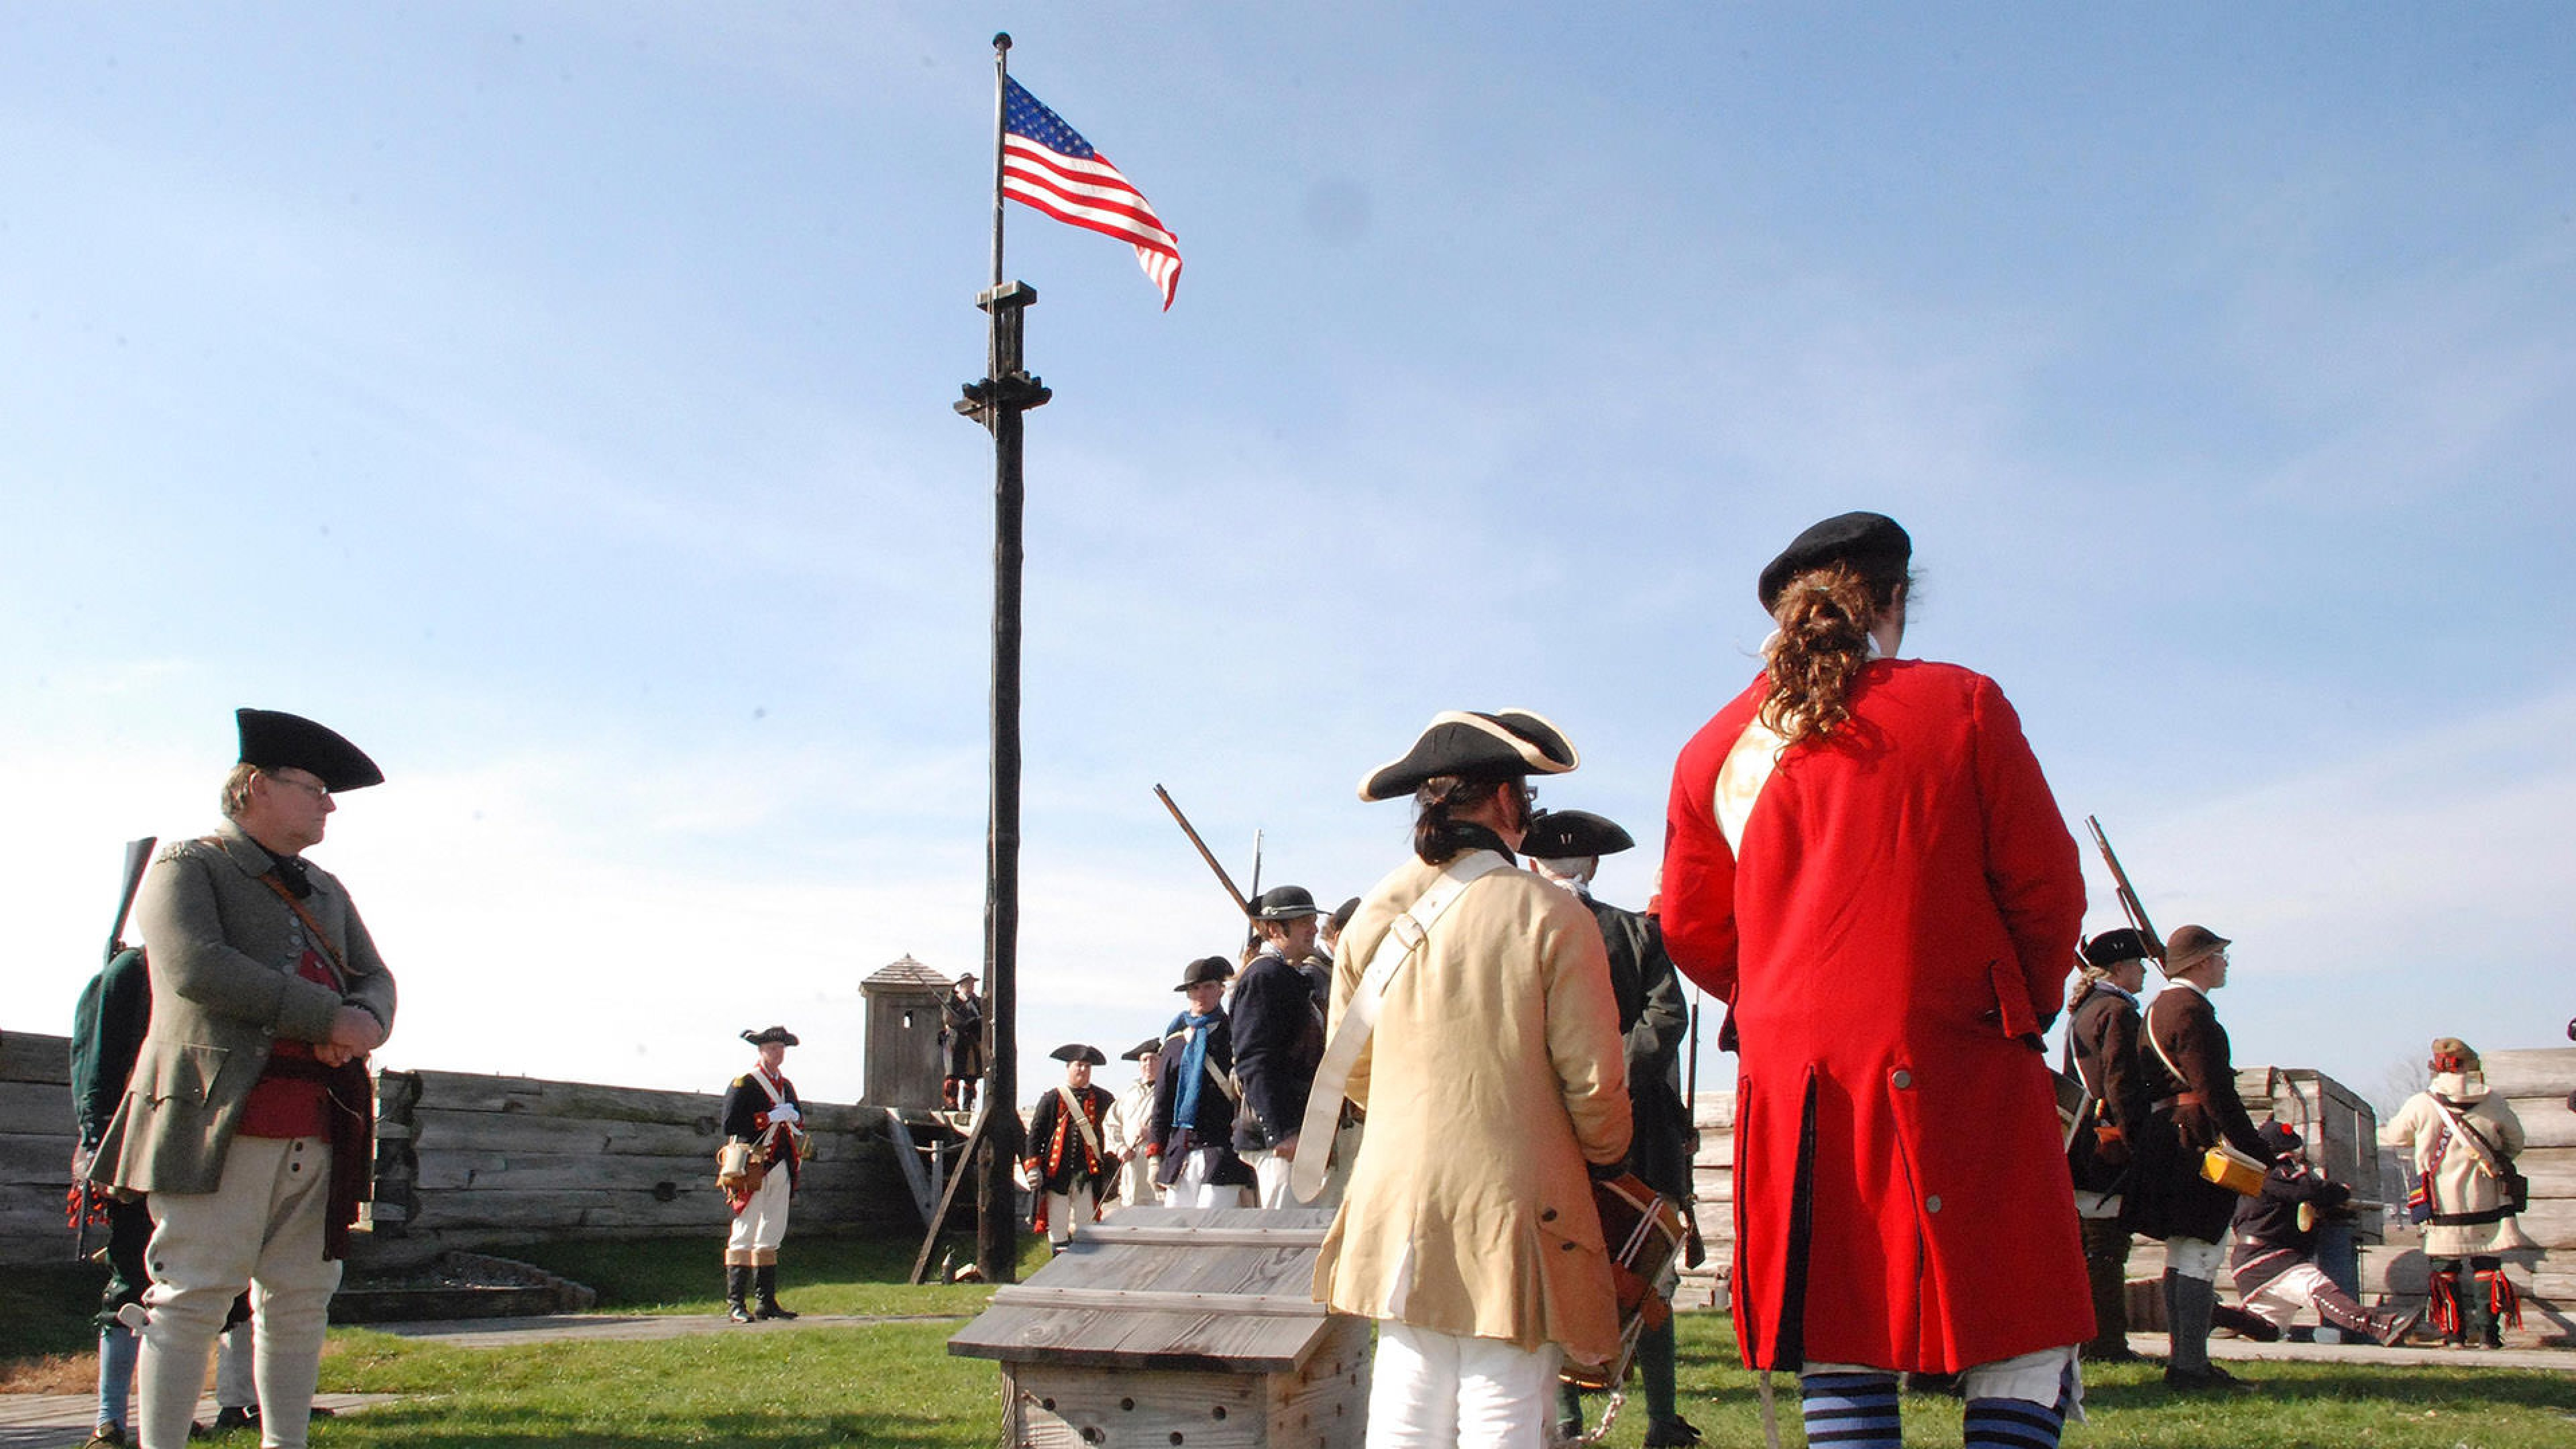 Reenactors at Fort Stanwix National Monument